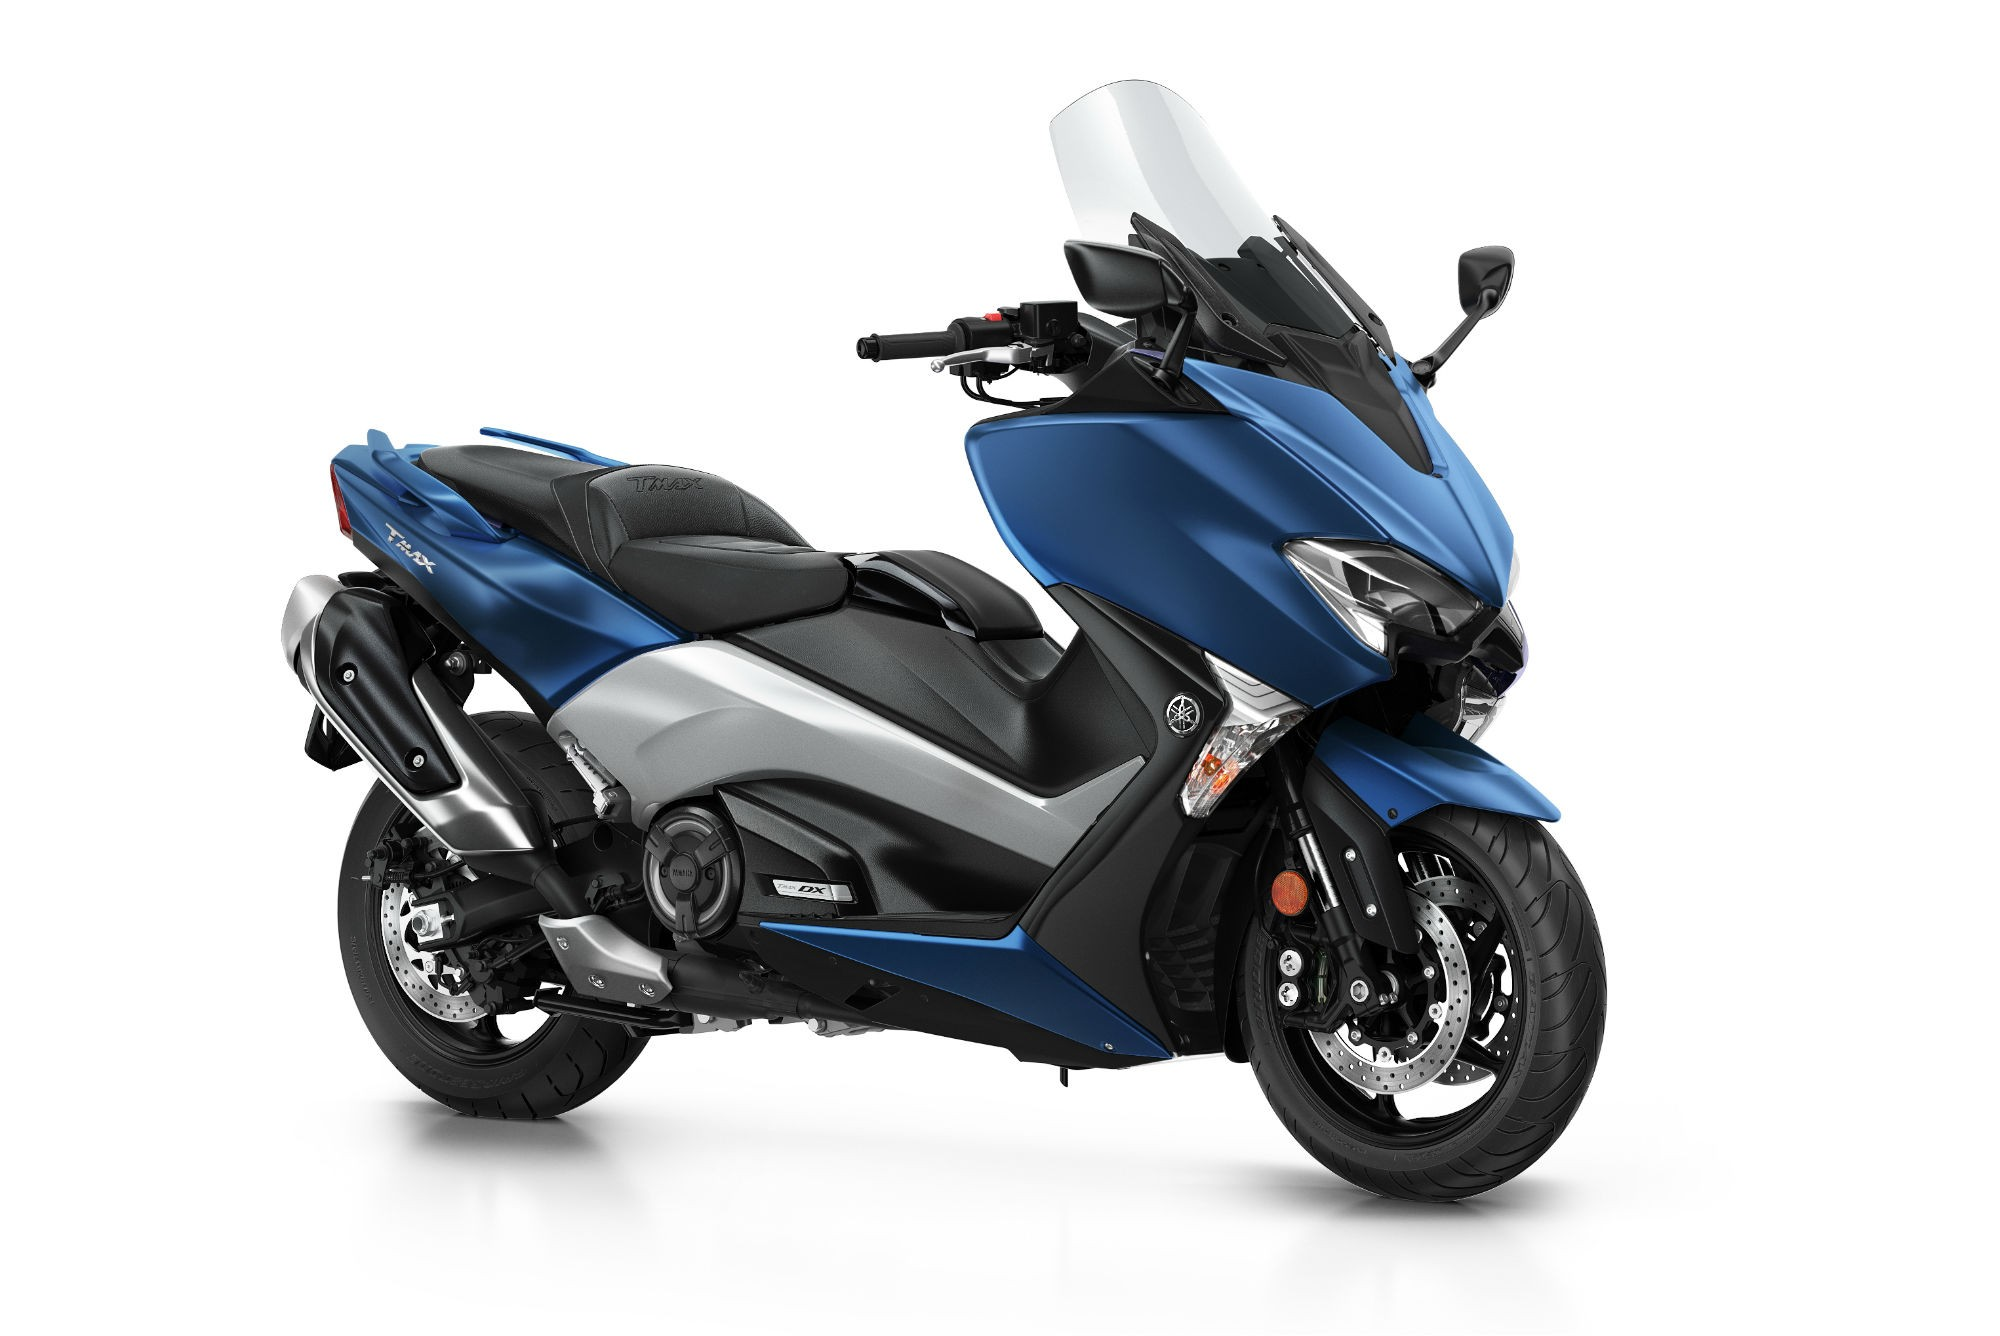 Yamaha tmax photo - 5